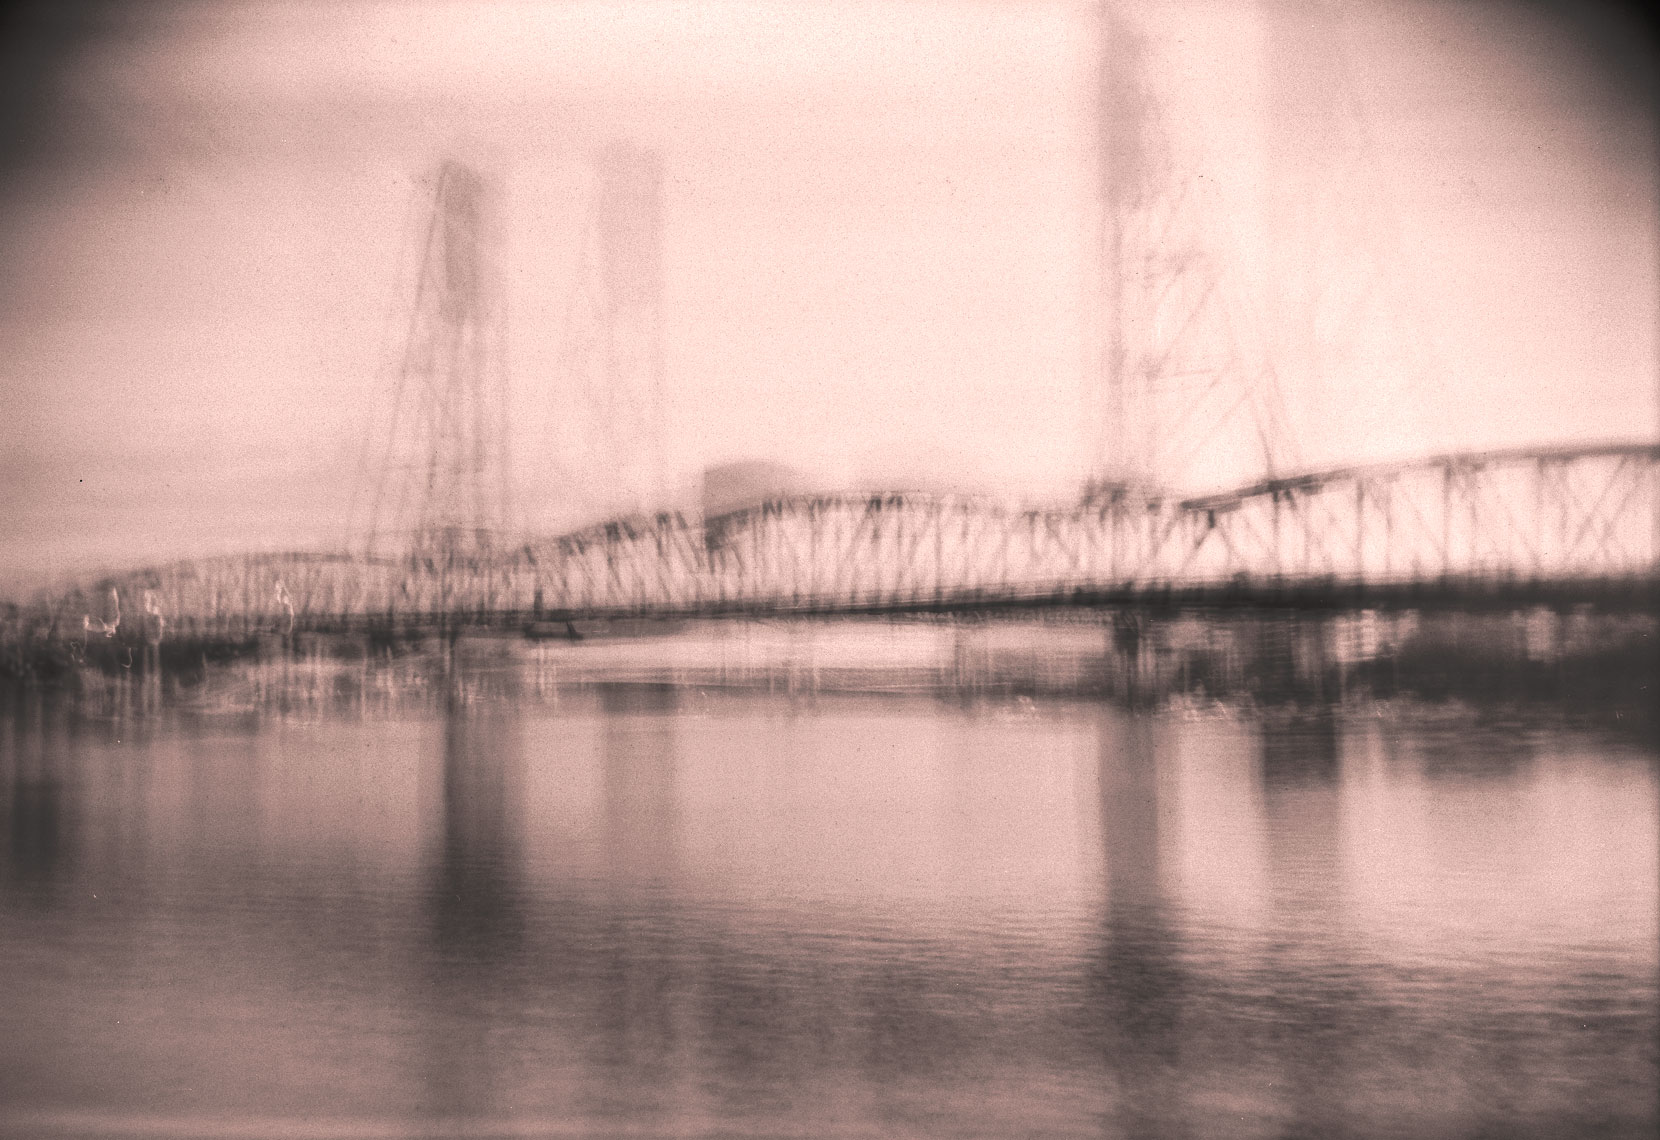 abstract-of-portland-bridge-blurred